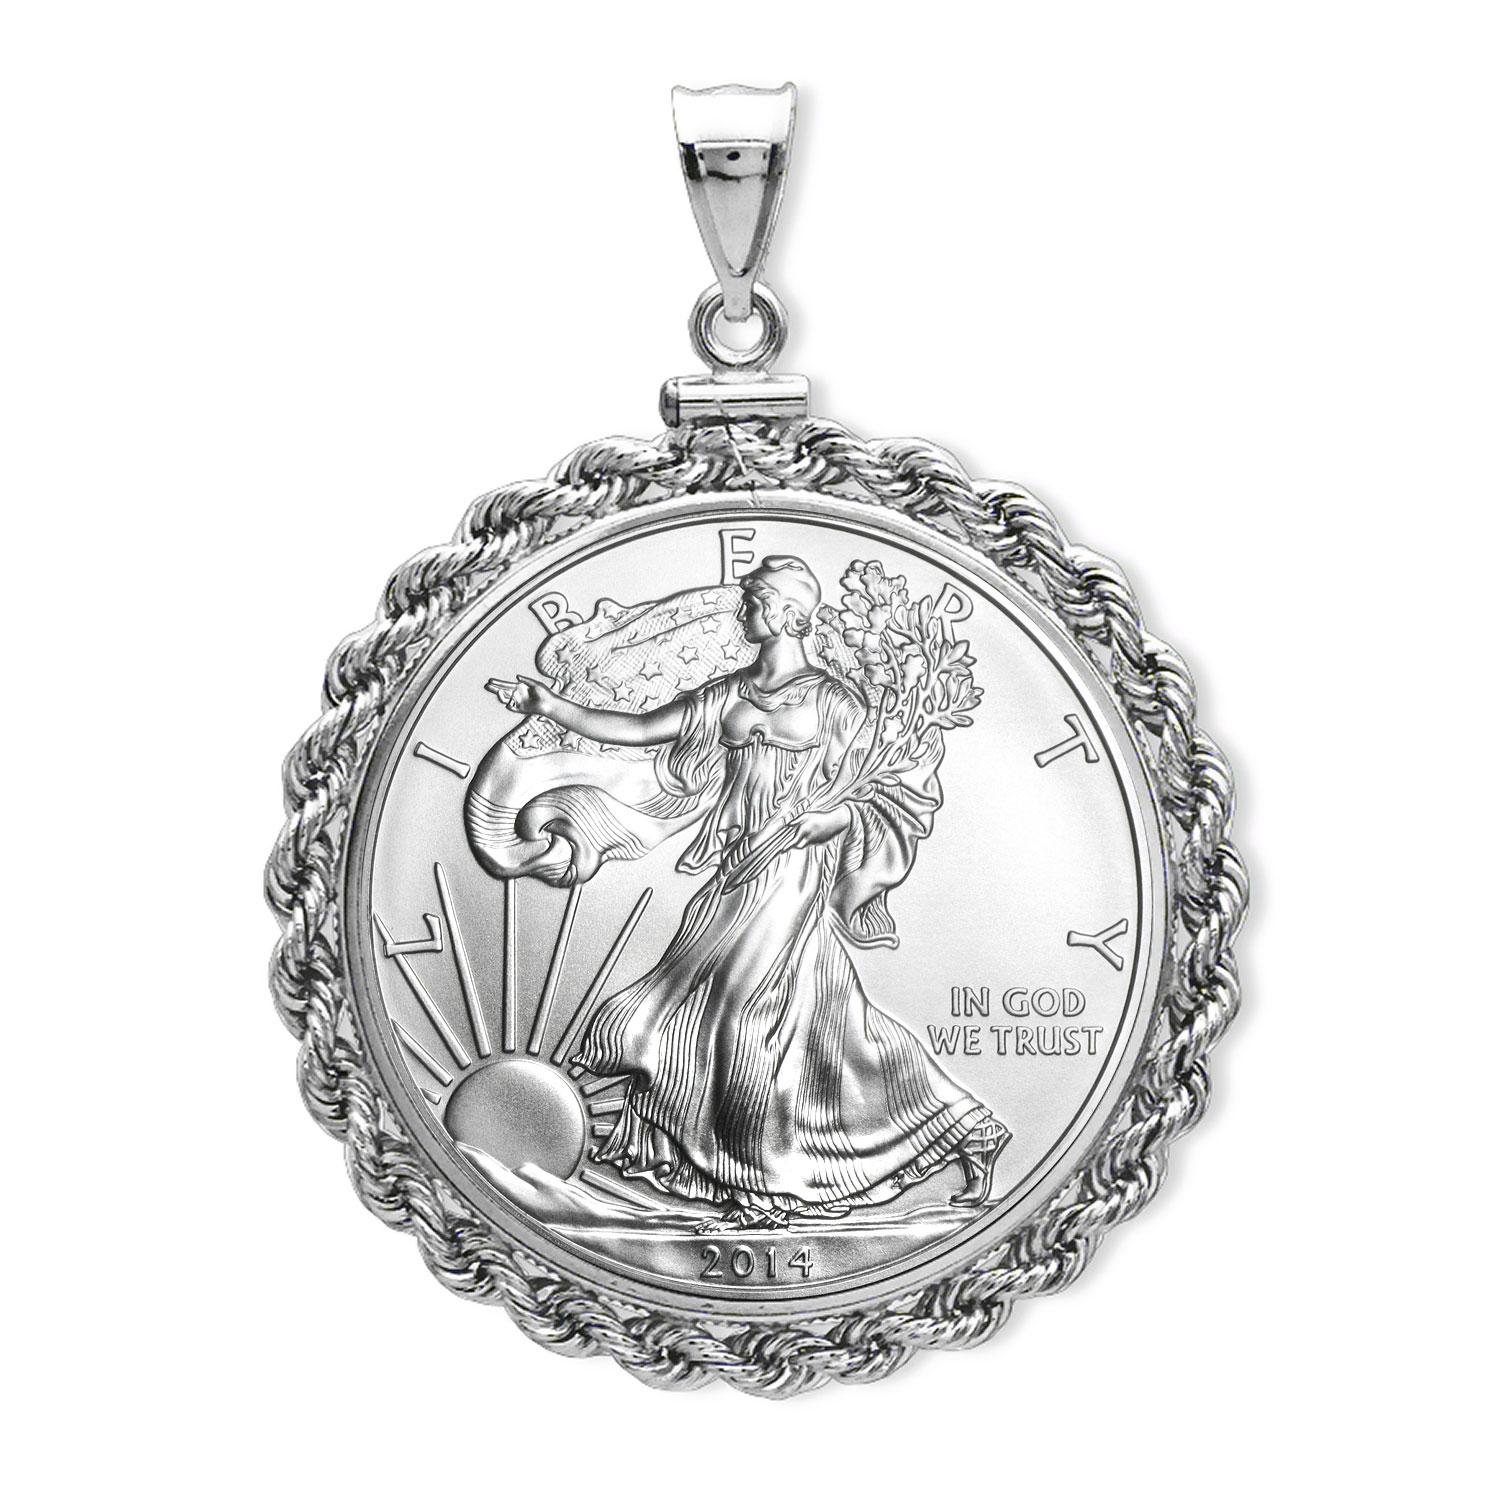 2014 1 oz Silver Eagle Pendant (Rope-ScrewTop Bezel)